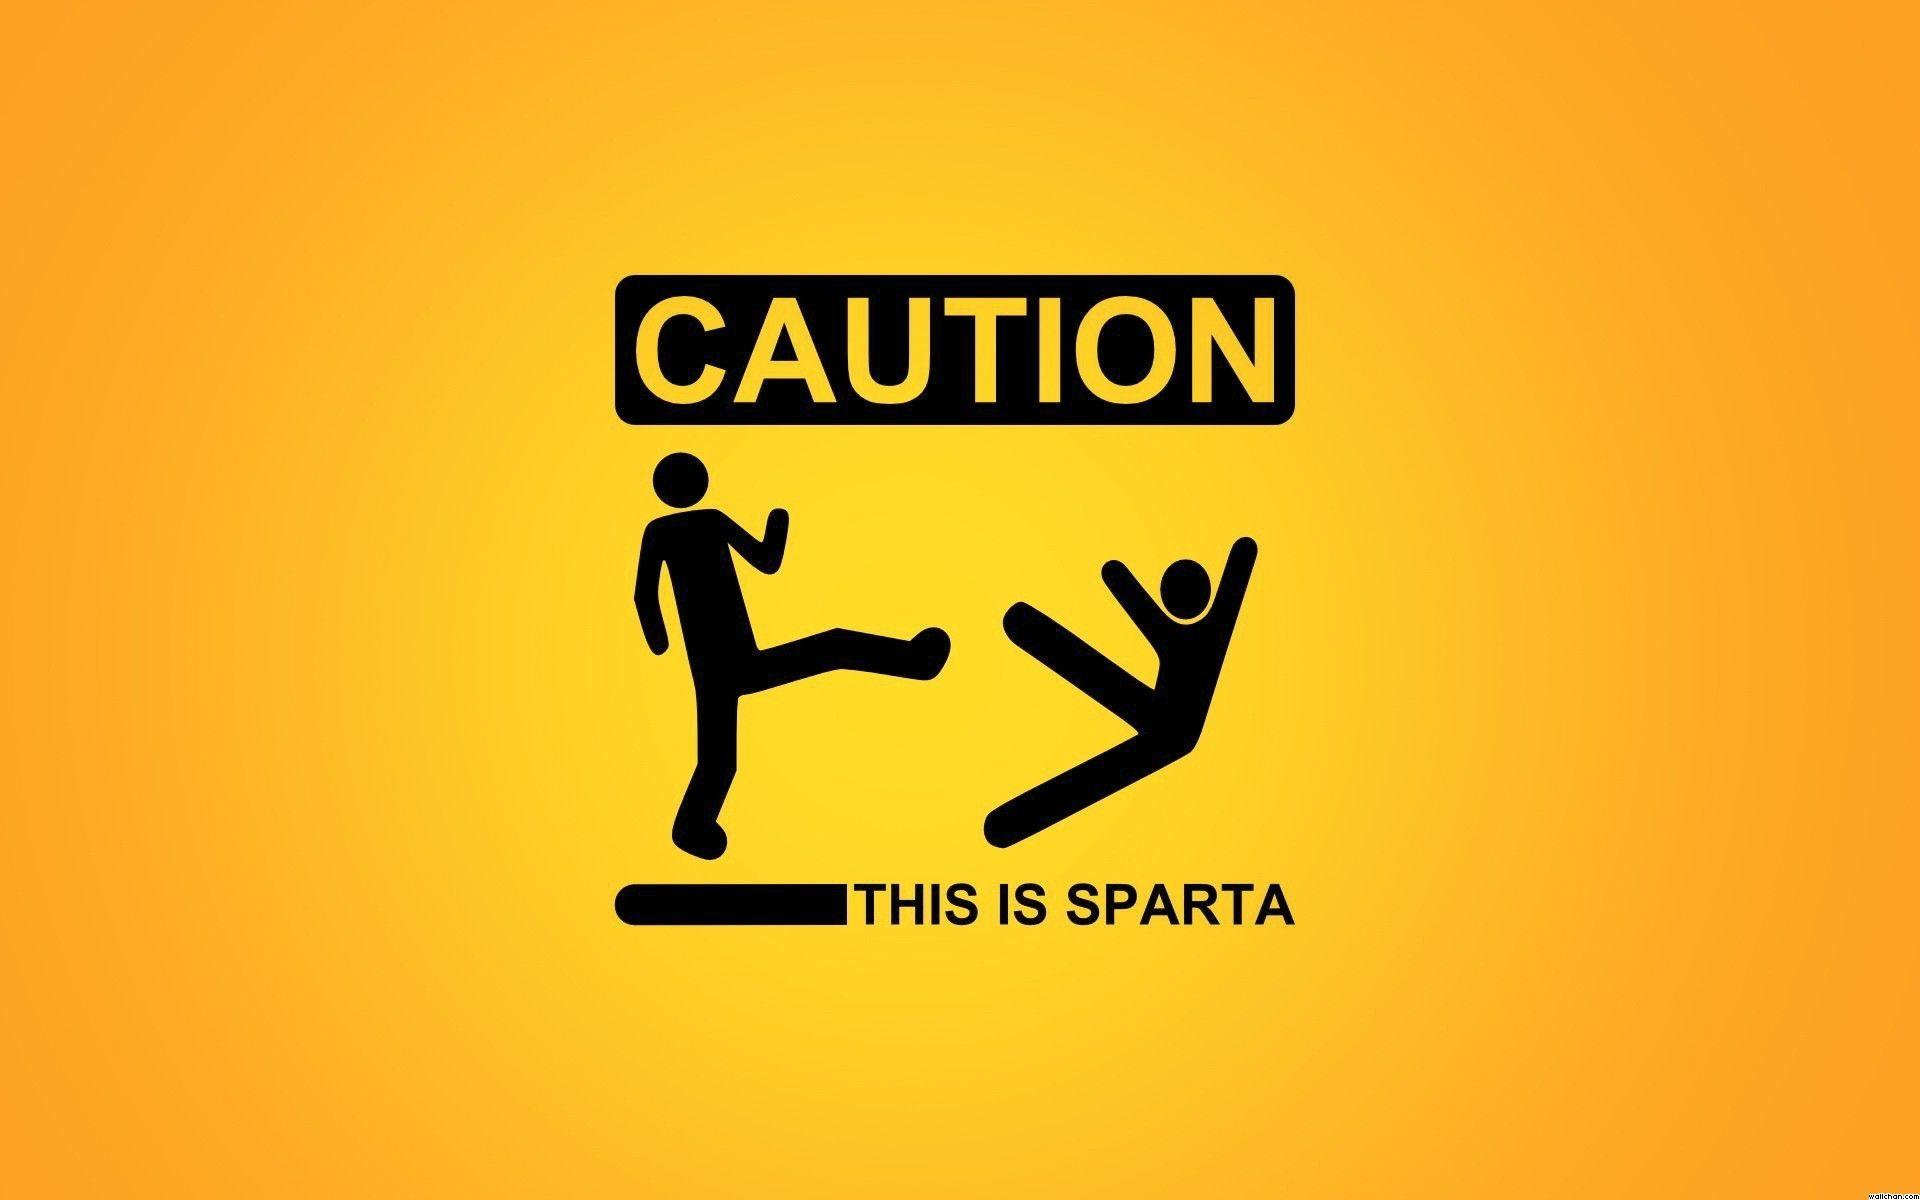 Funny Caution Hd 1080p Wallpaper